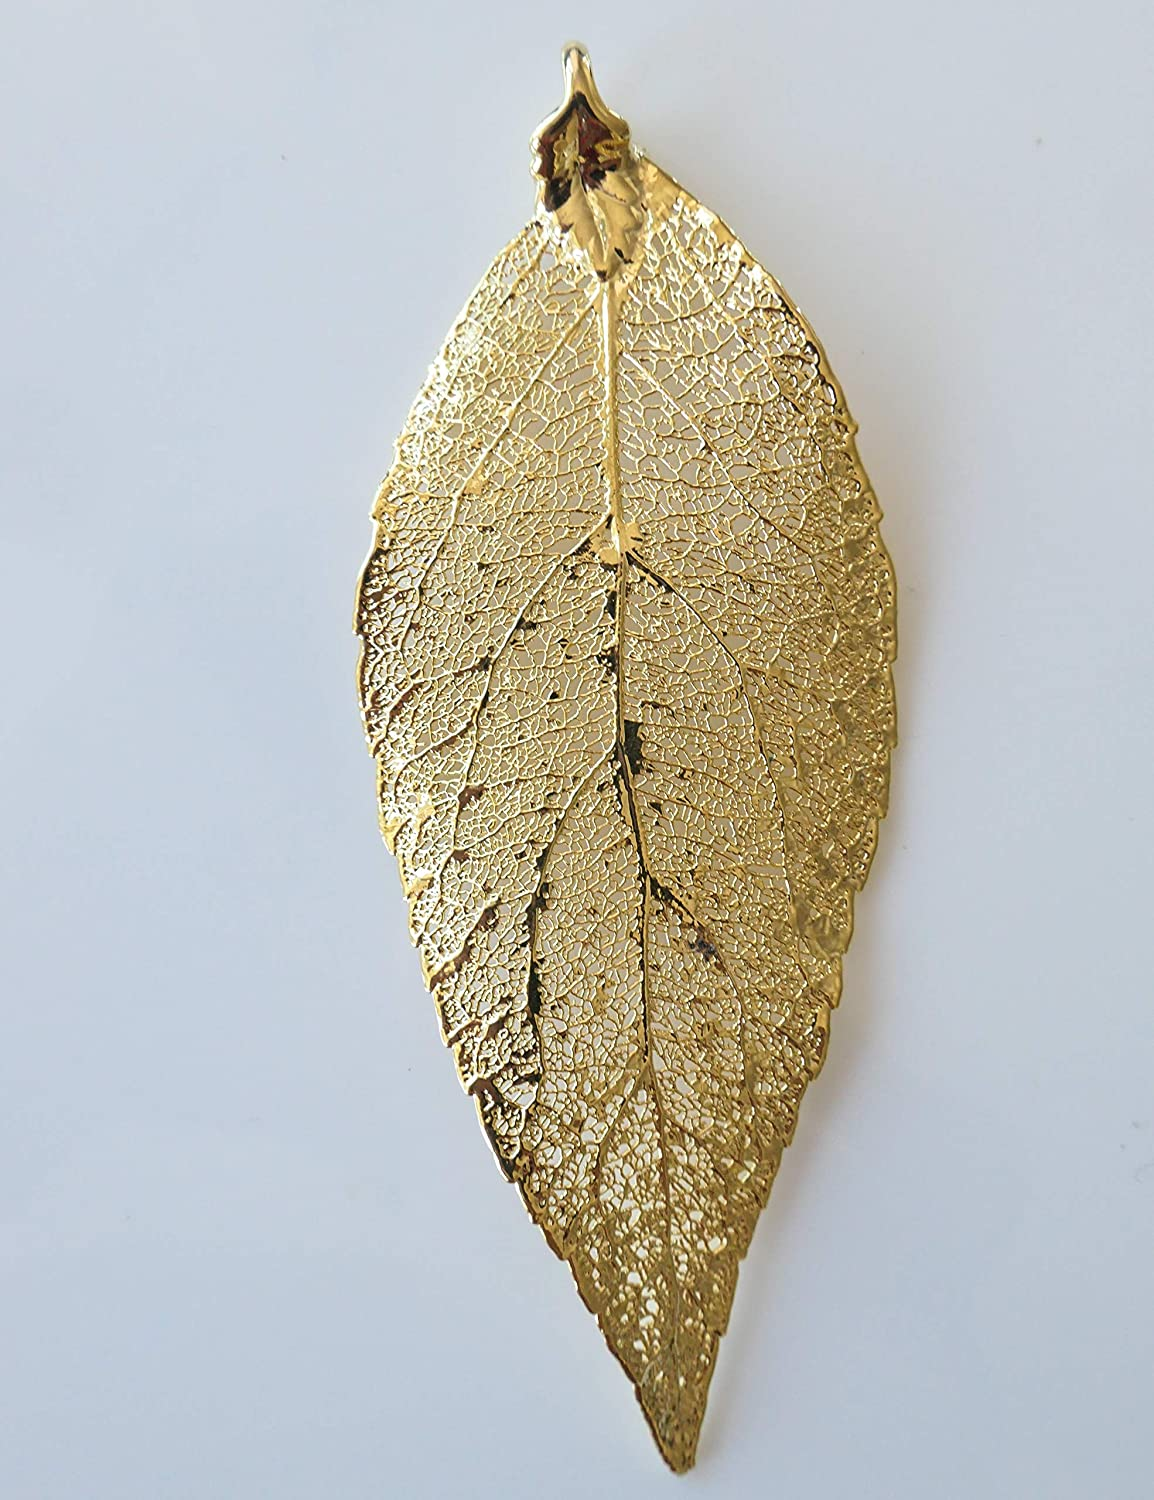 Real Holly Leaves Dipped In 24k Gold Carded 24k Gold Electroplated French Hook Earrings